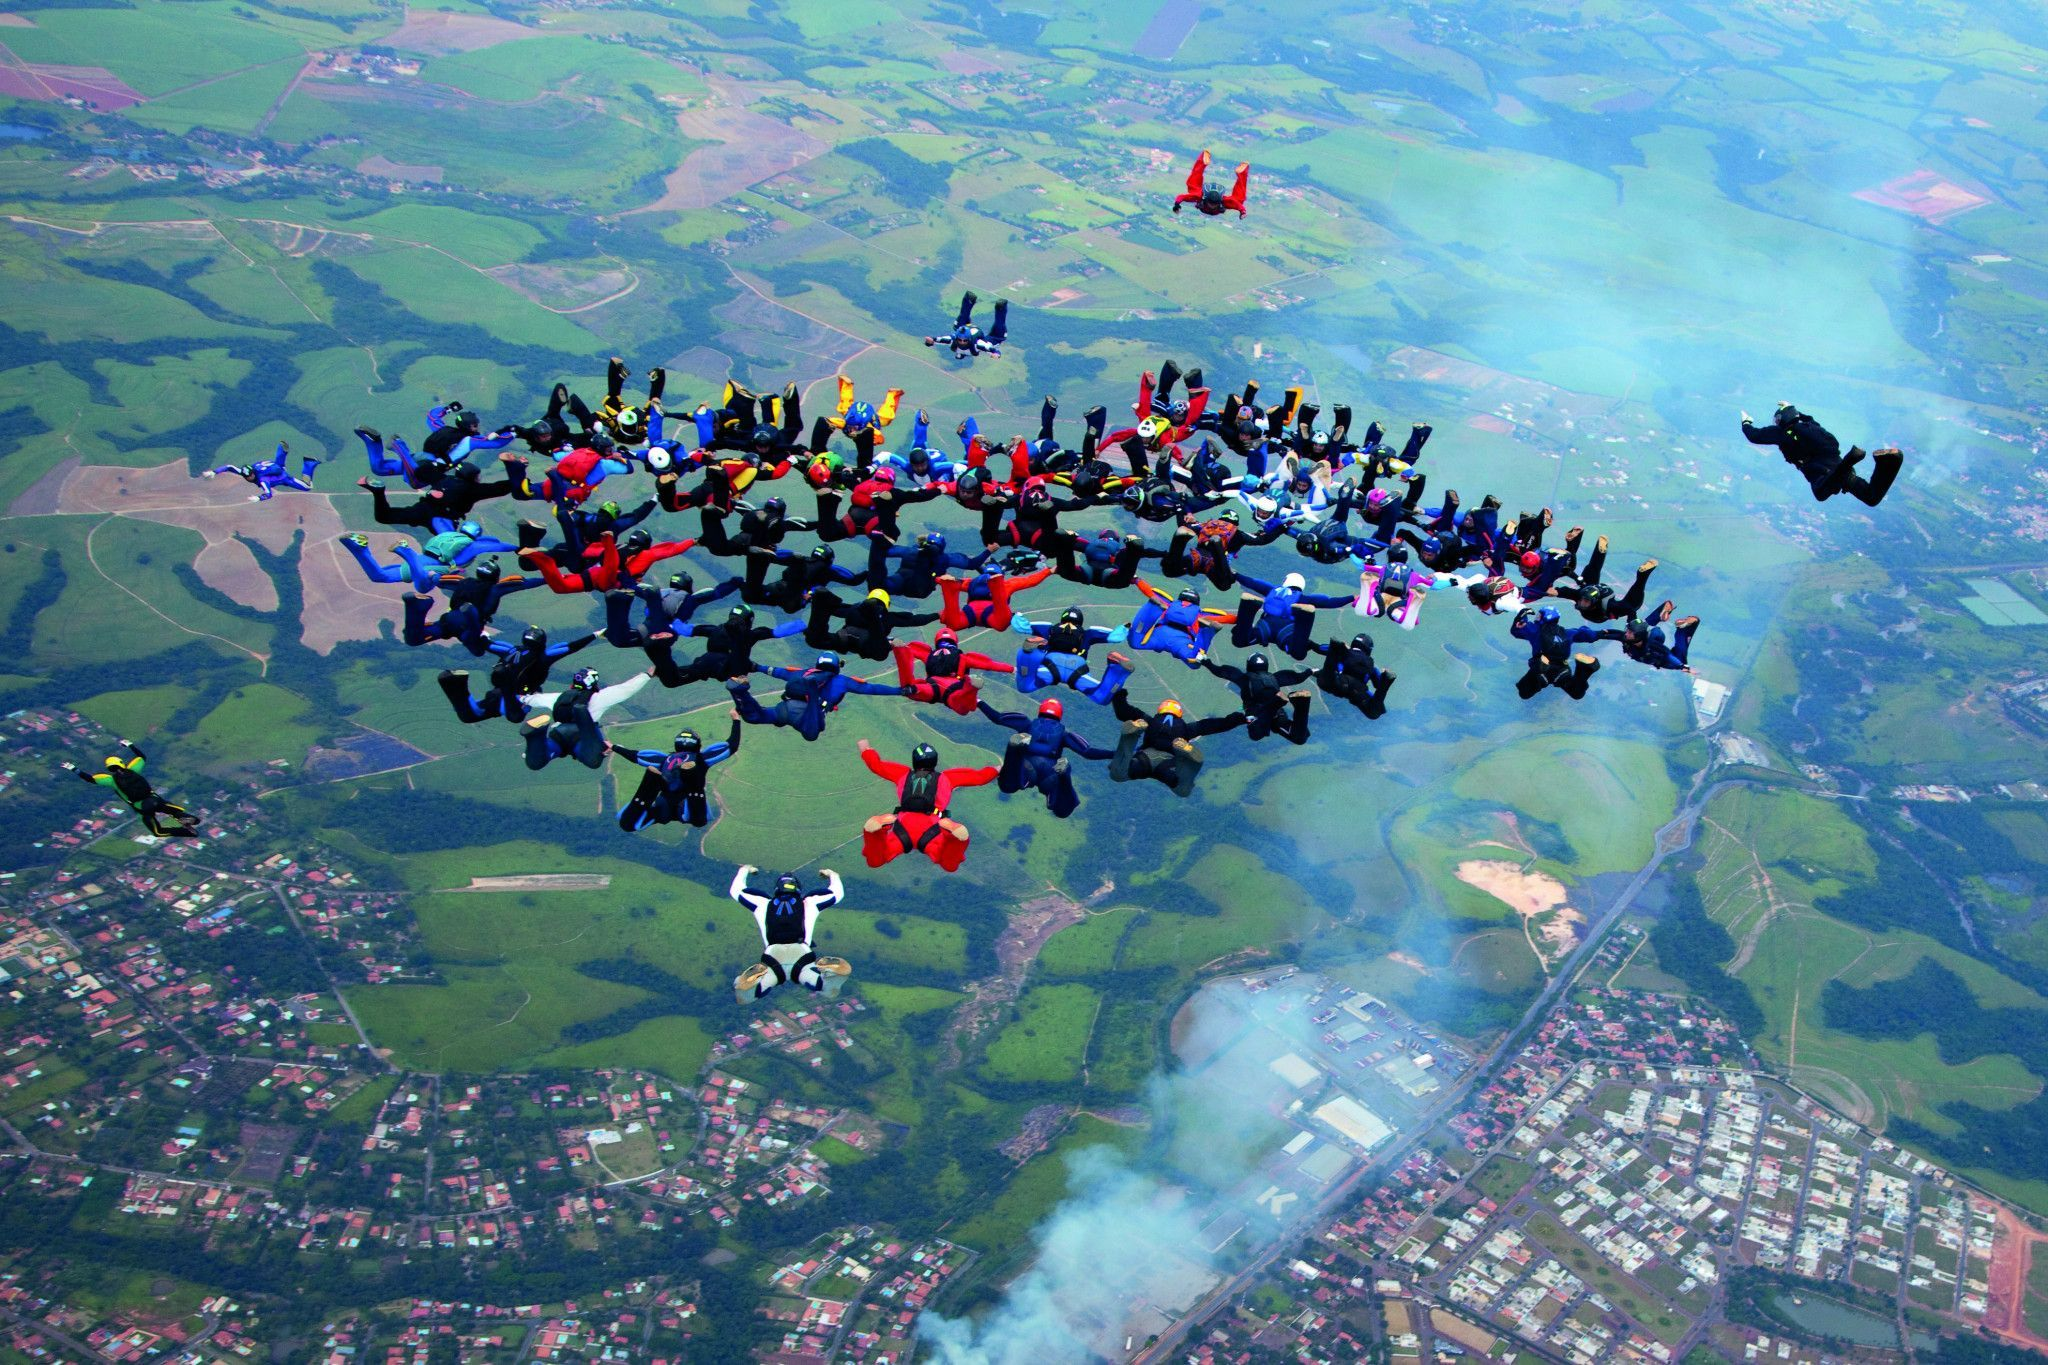 Leap of faith: Join our charity skydive